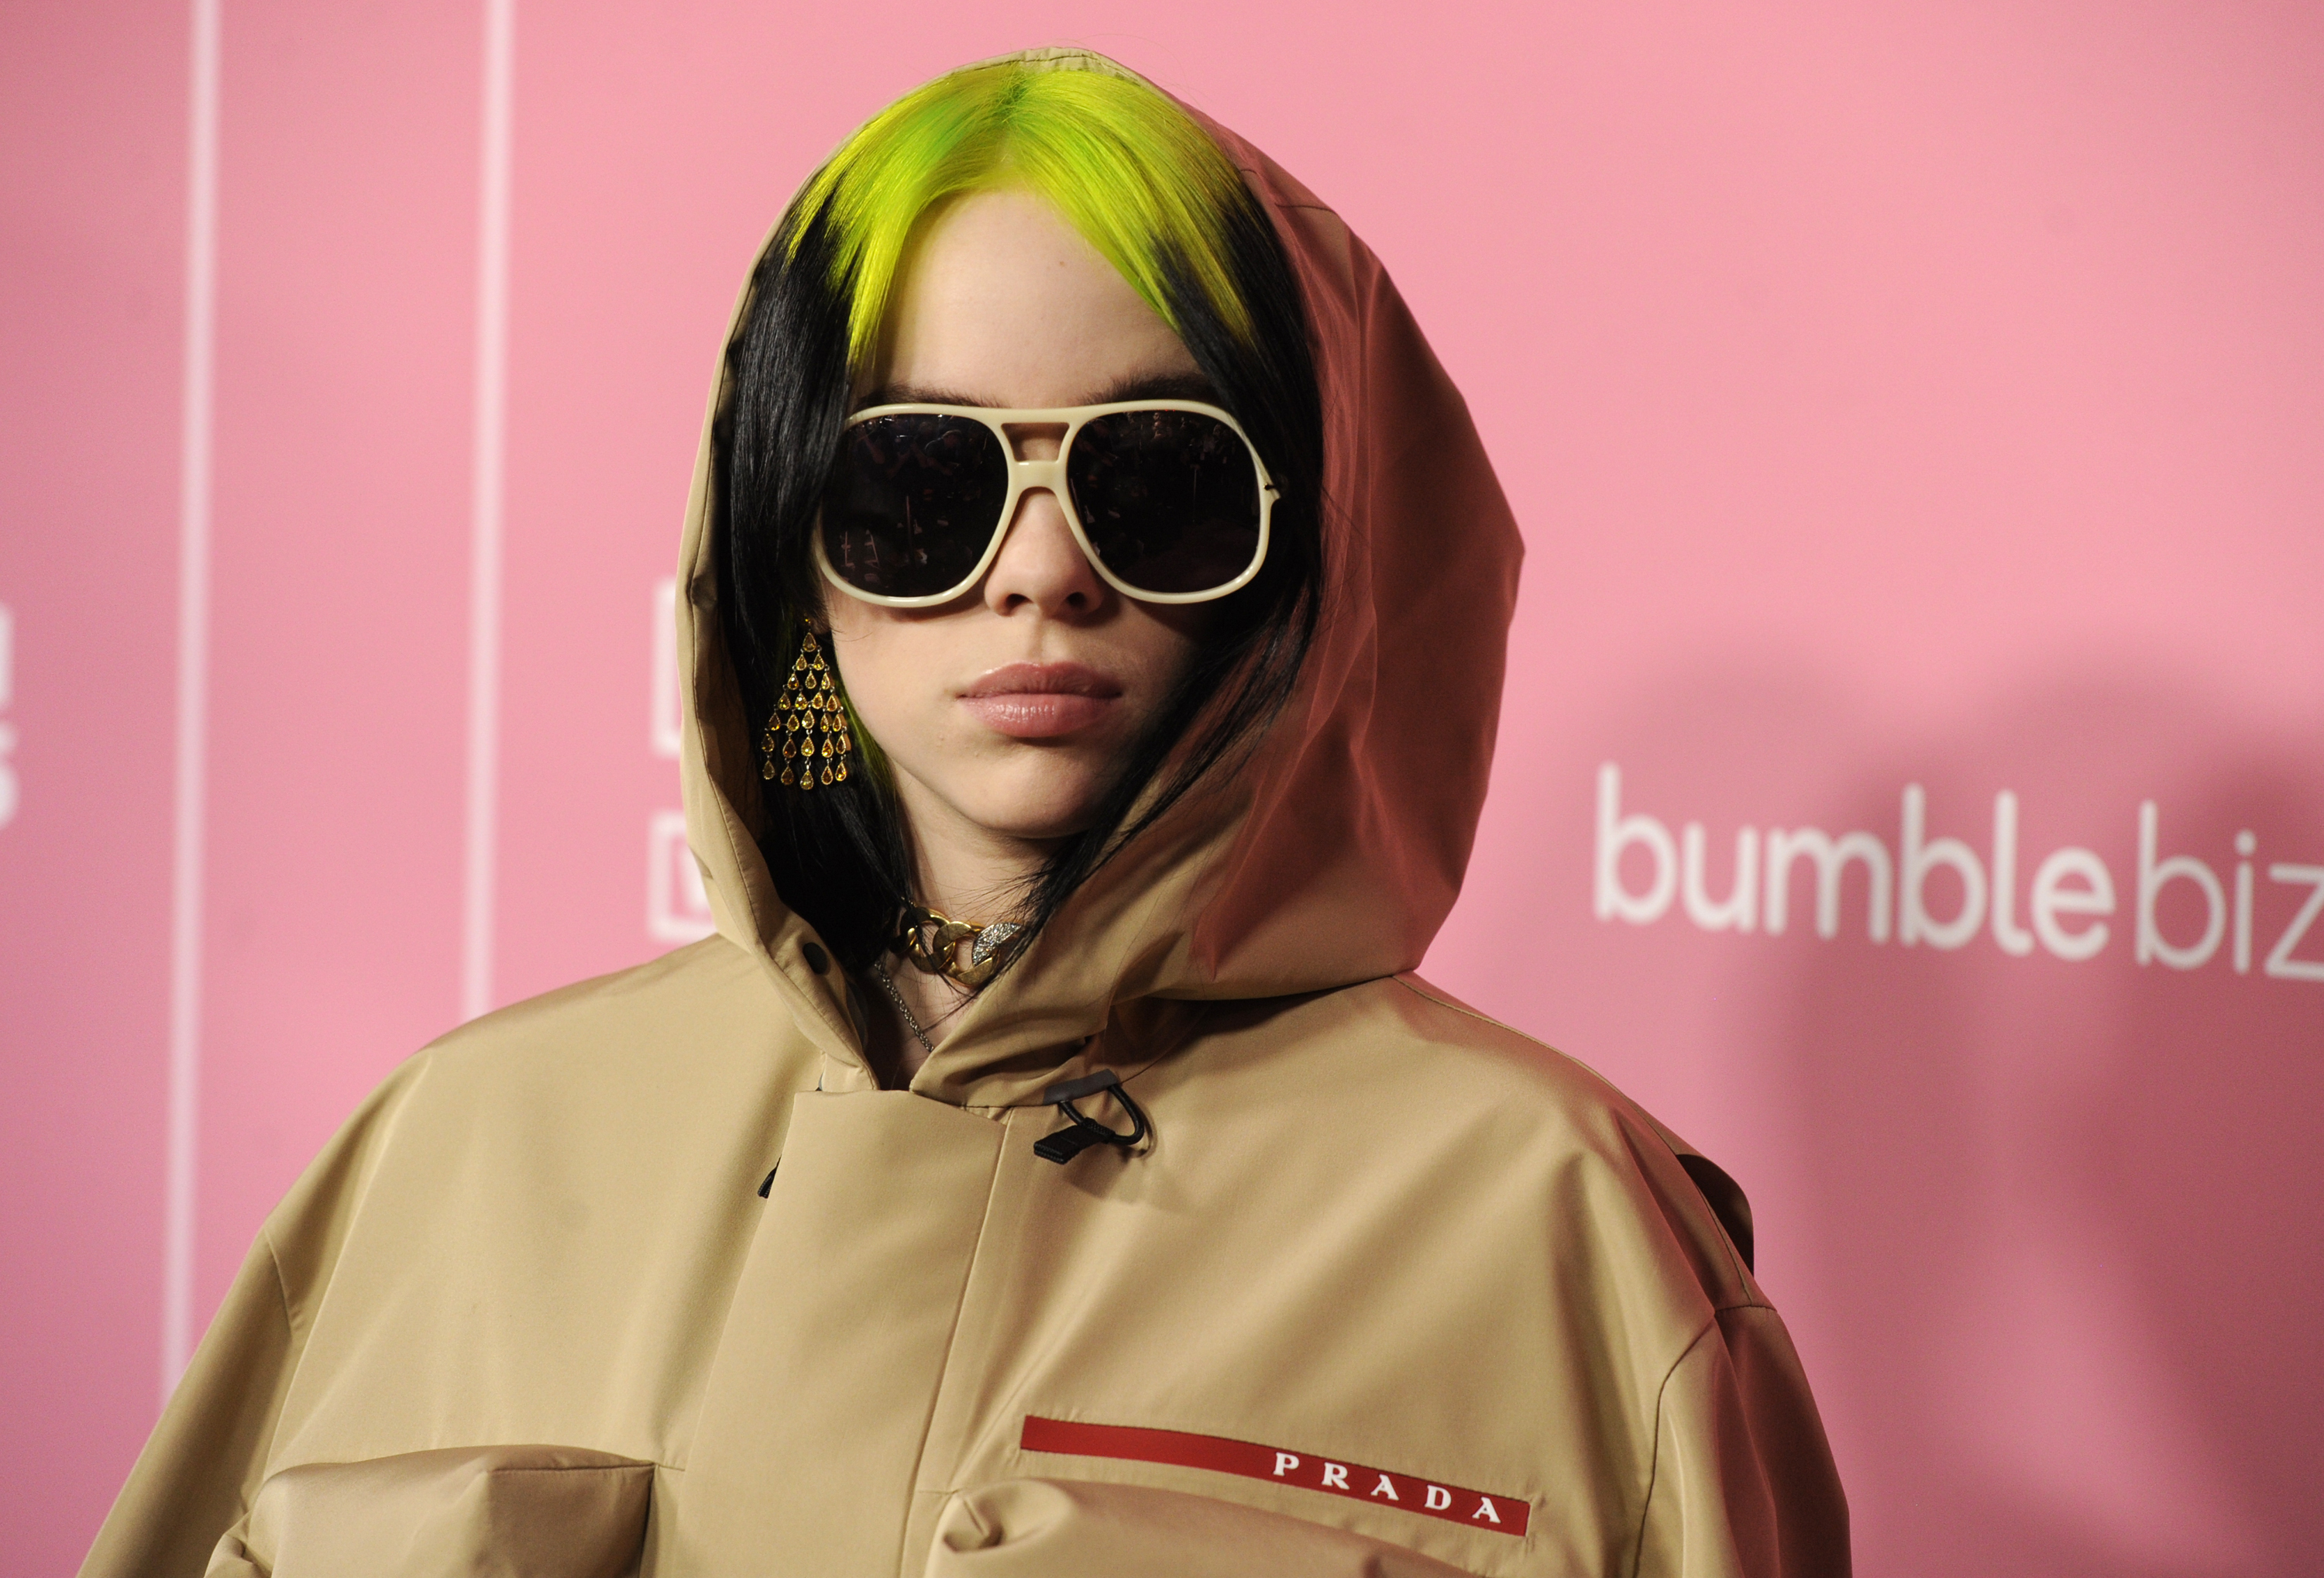 Billie Eilish arrives at Billboard's Women in Music at the Hollywood Palladium on Thursday, Dec. 12, 2019, in Los Angeles. (AP Photo/Chris Pizzello) ORG XMIT: CAPM119